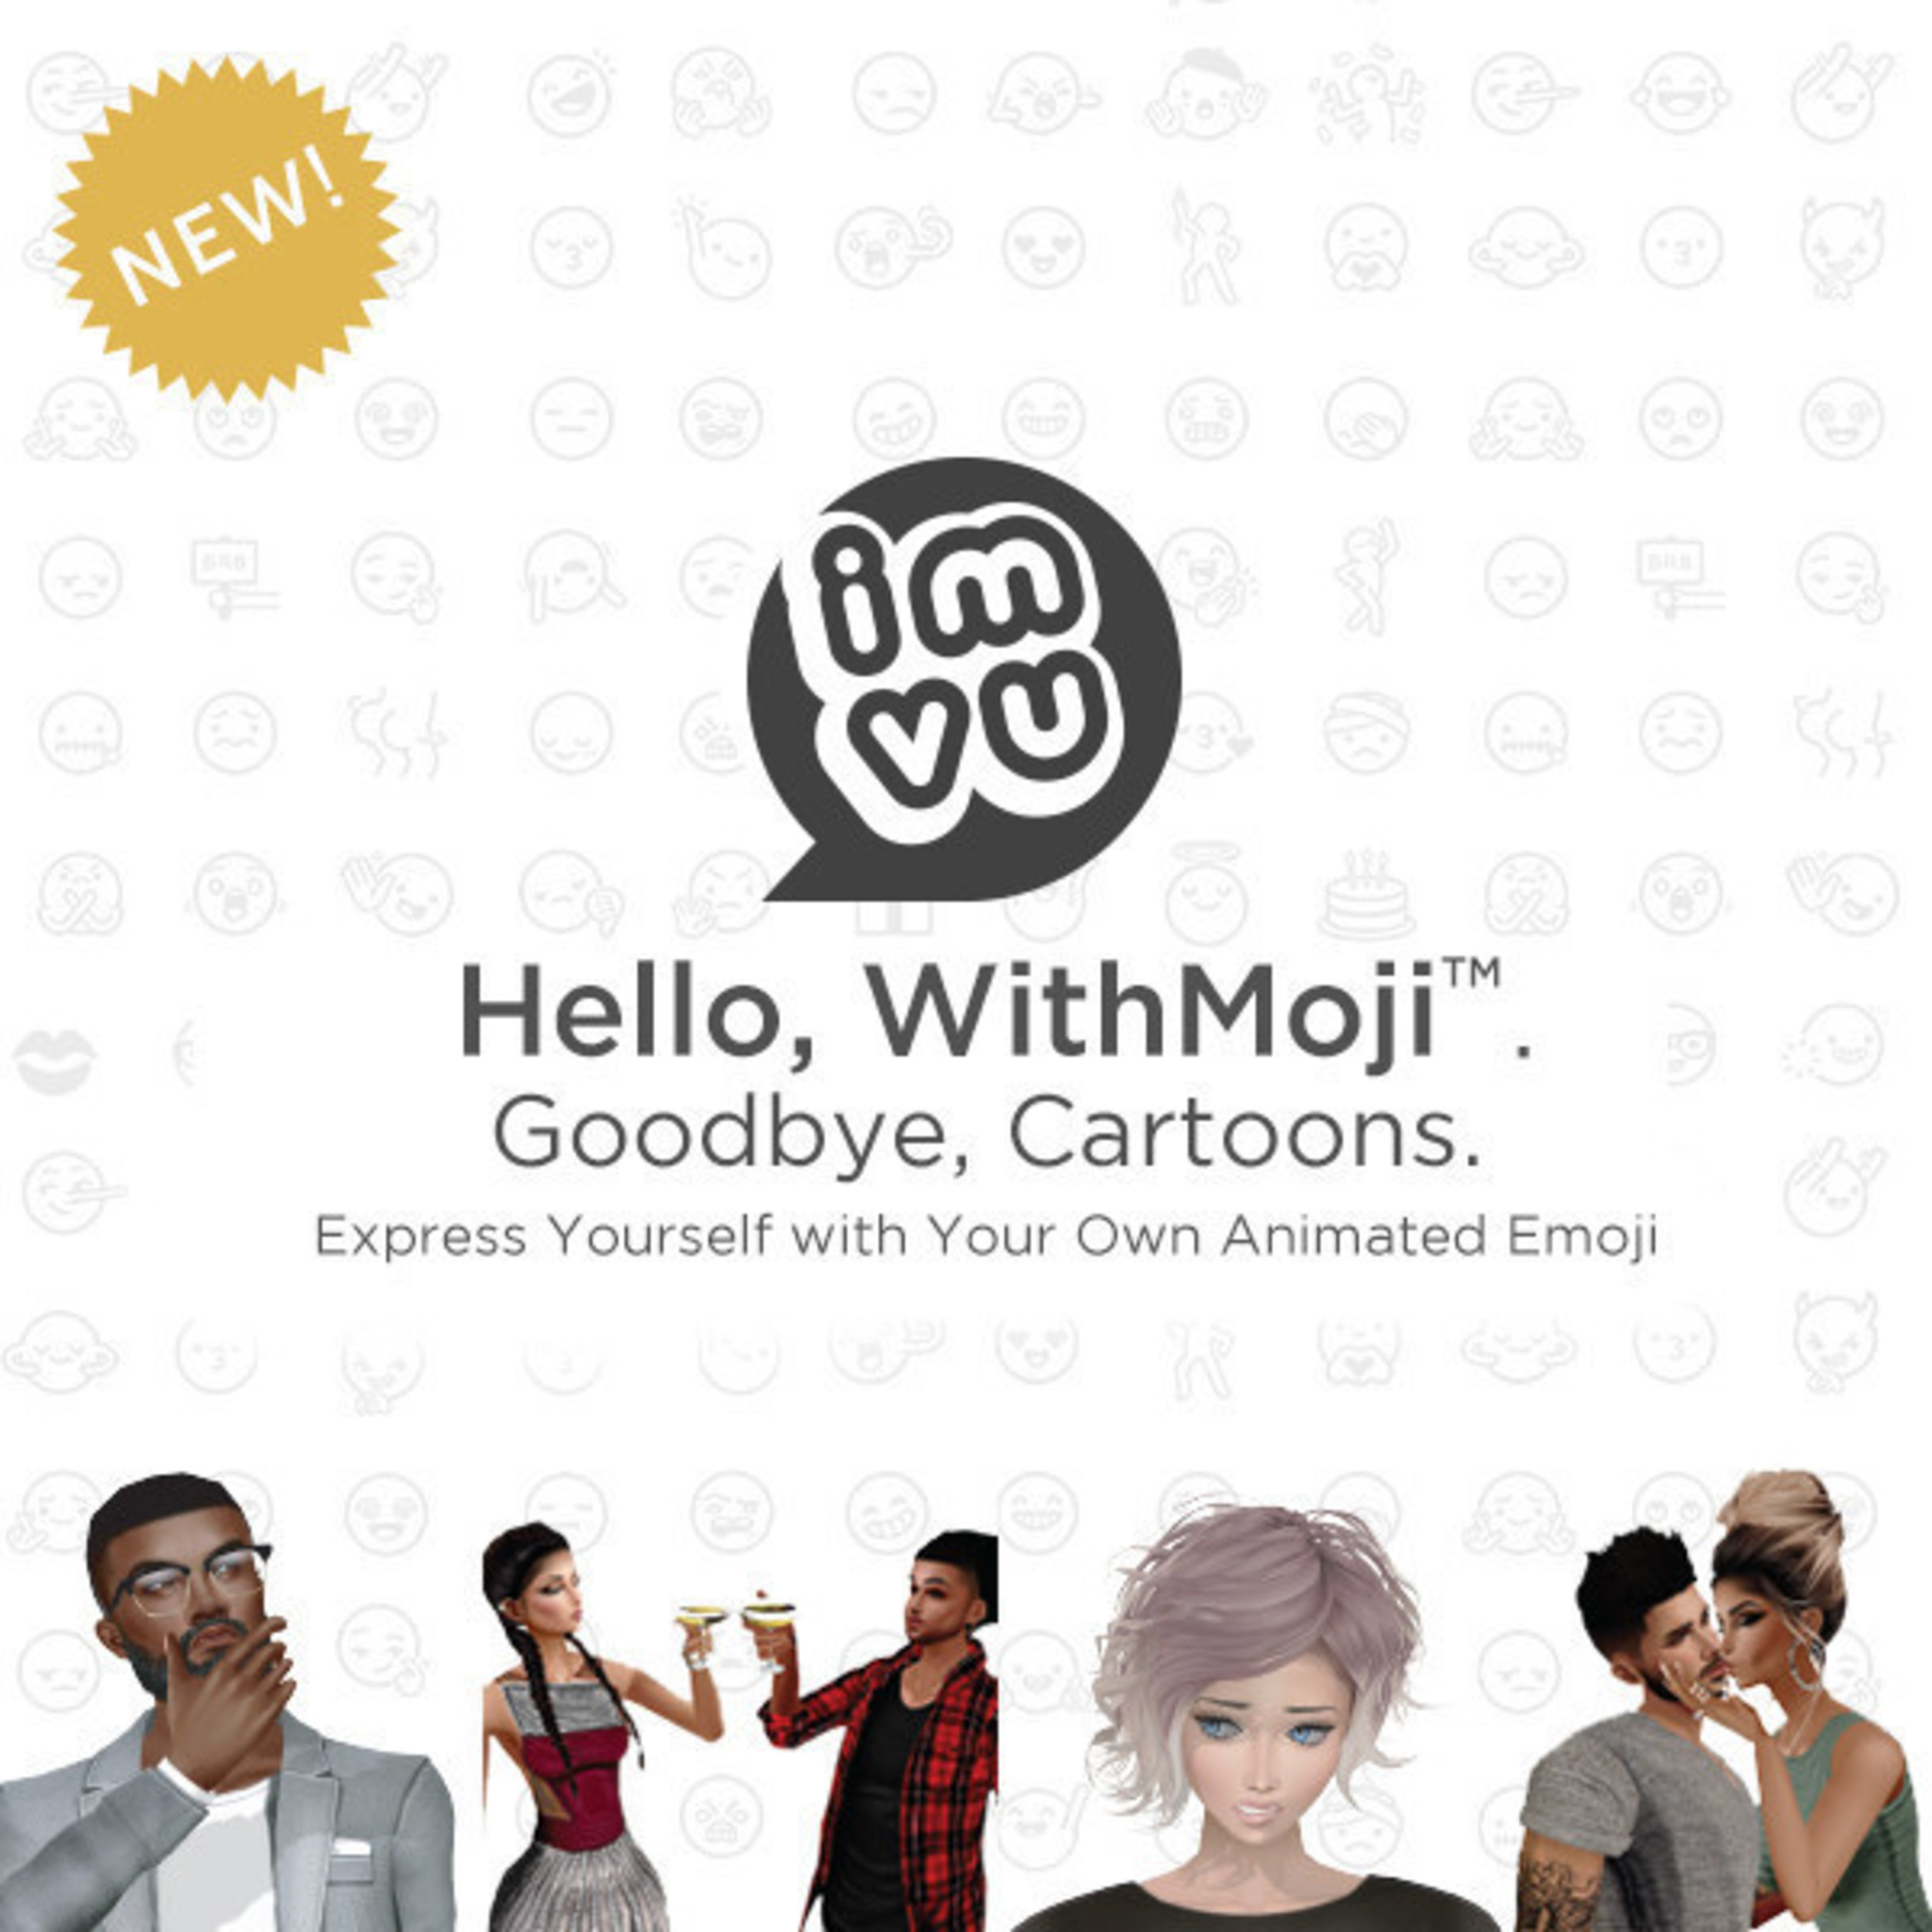 Introducing WithMoji and WithMoji App - The First and Only Animated Emoji